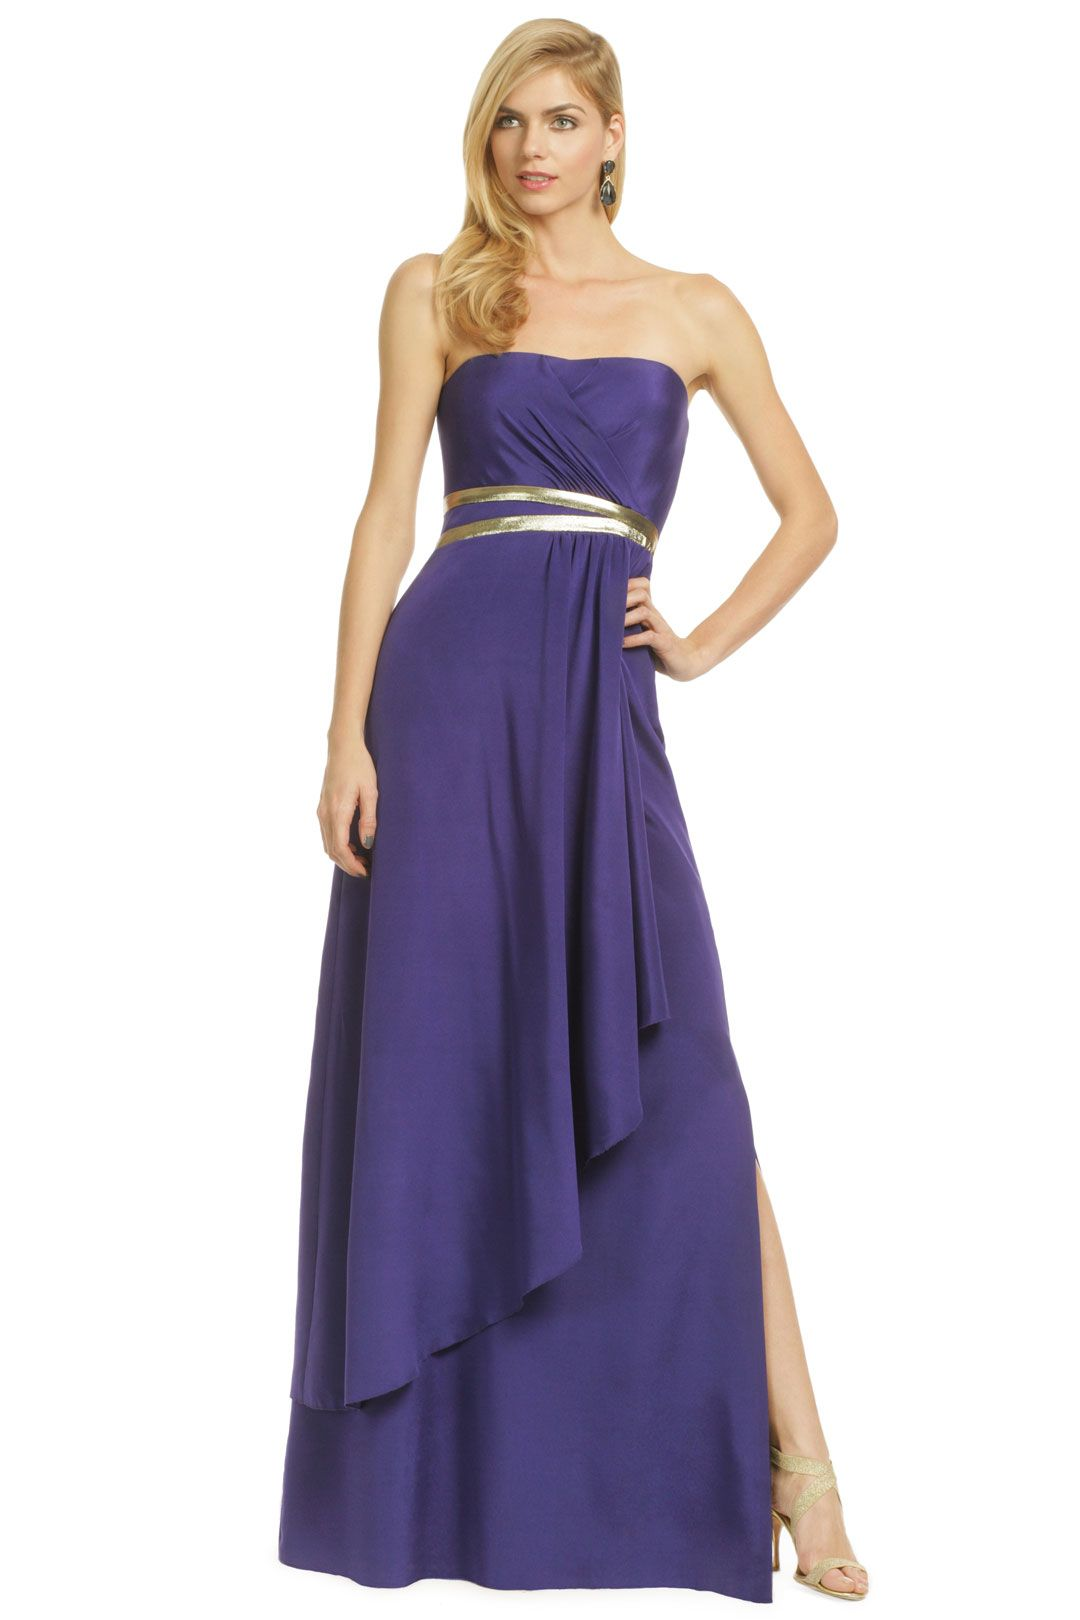 Nicole Miller Formal Dresses